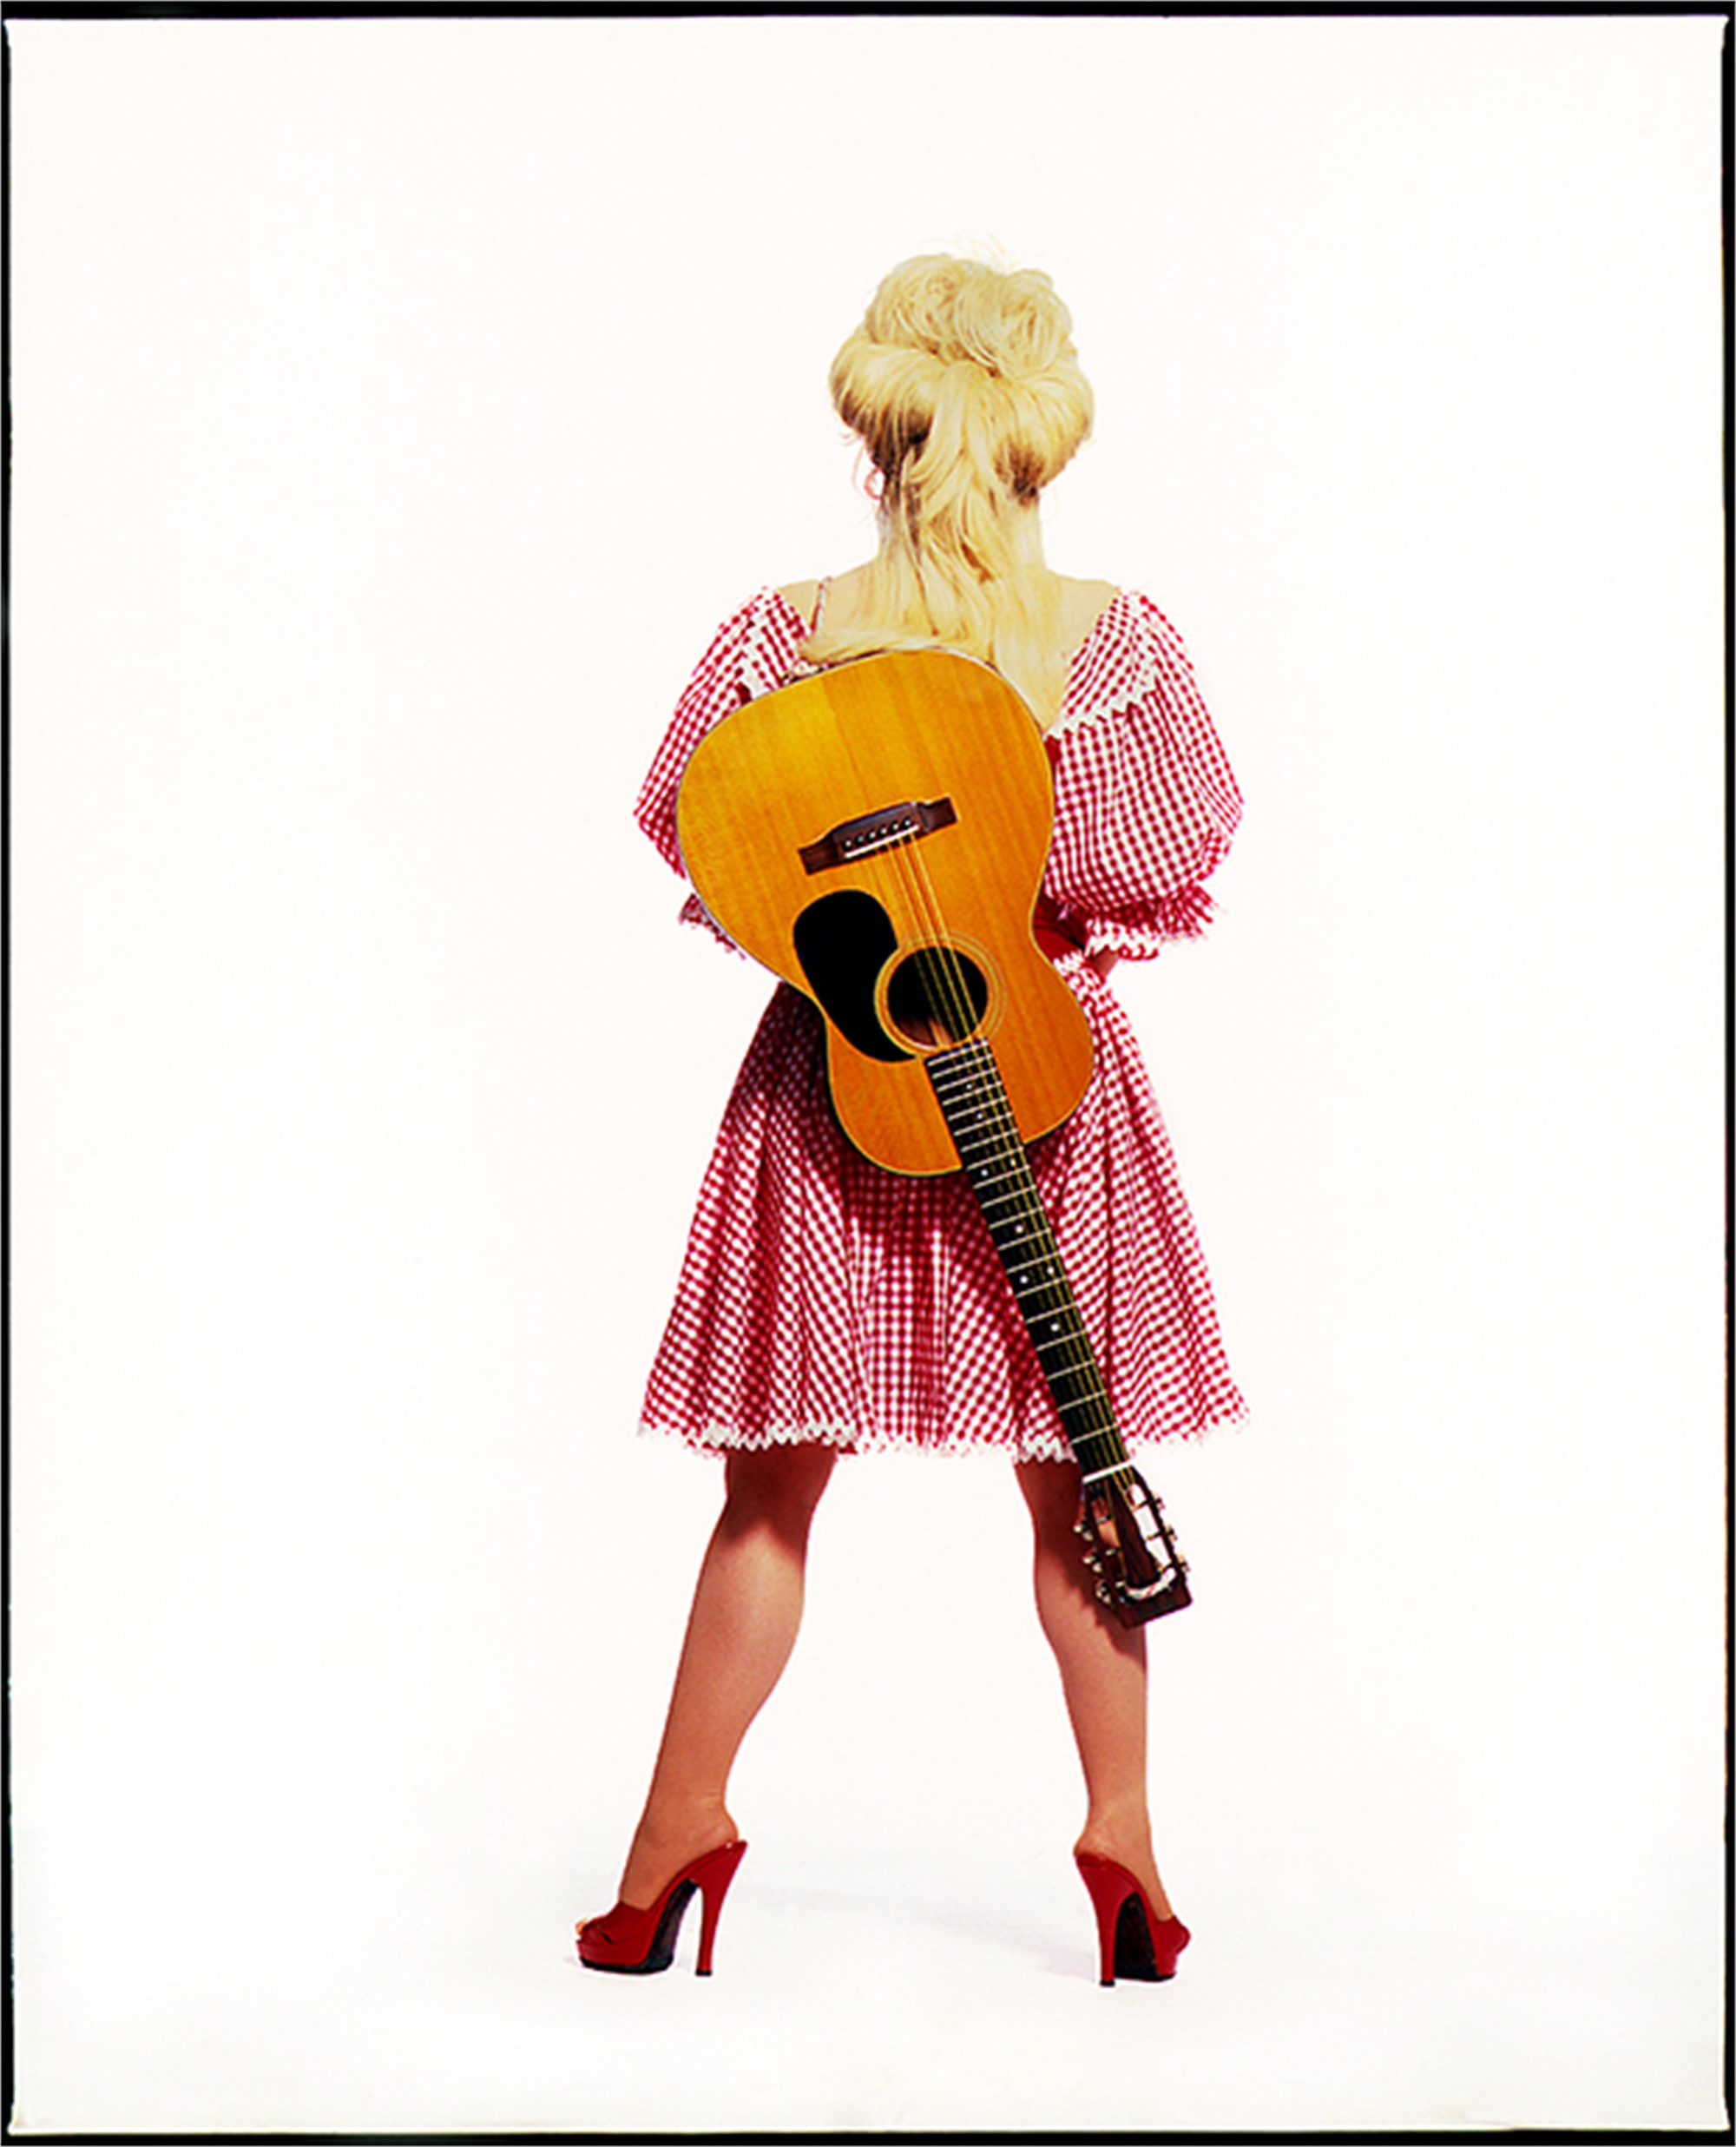 94052 Dolly Parton Backwards Color by Timothy White